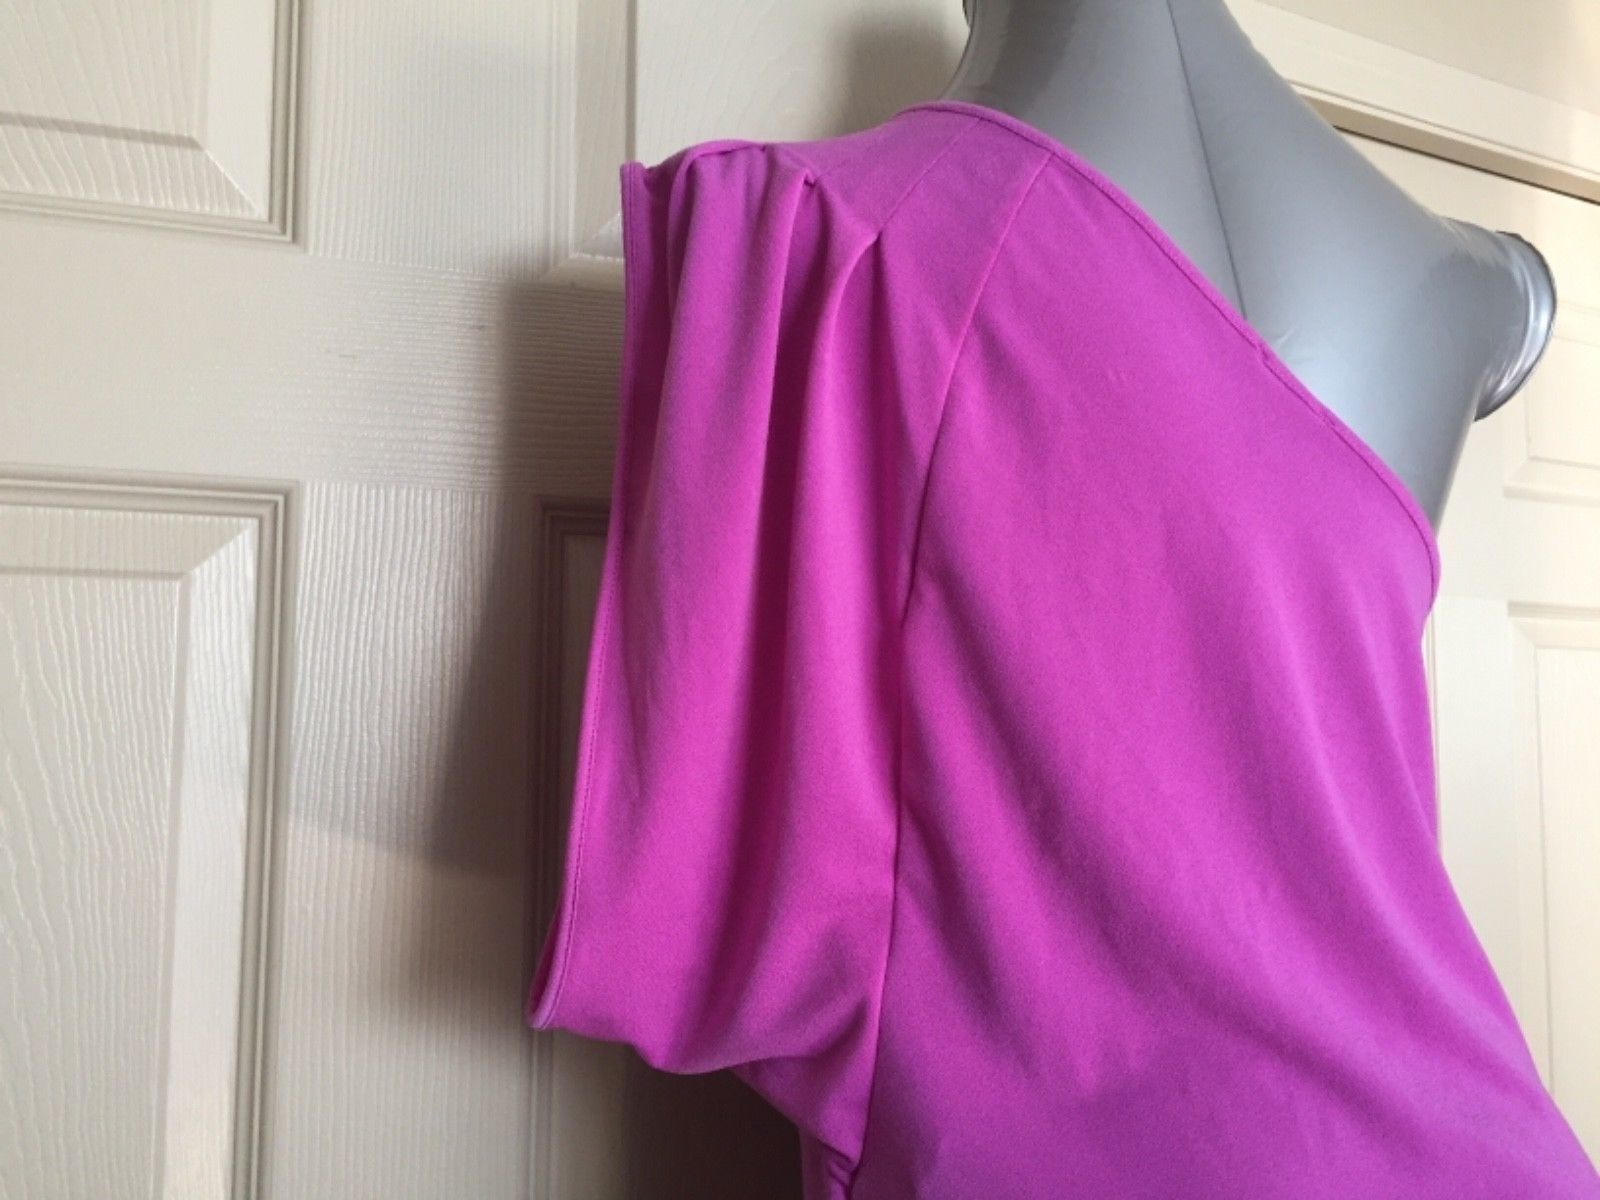 Express Women Top Blouse Size Large Pink One Shoulder One Sleeve Trendy New image 4